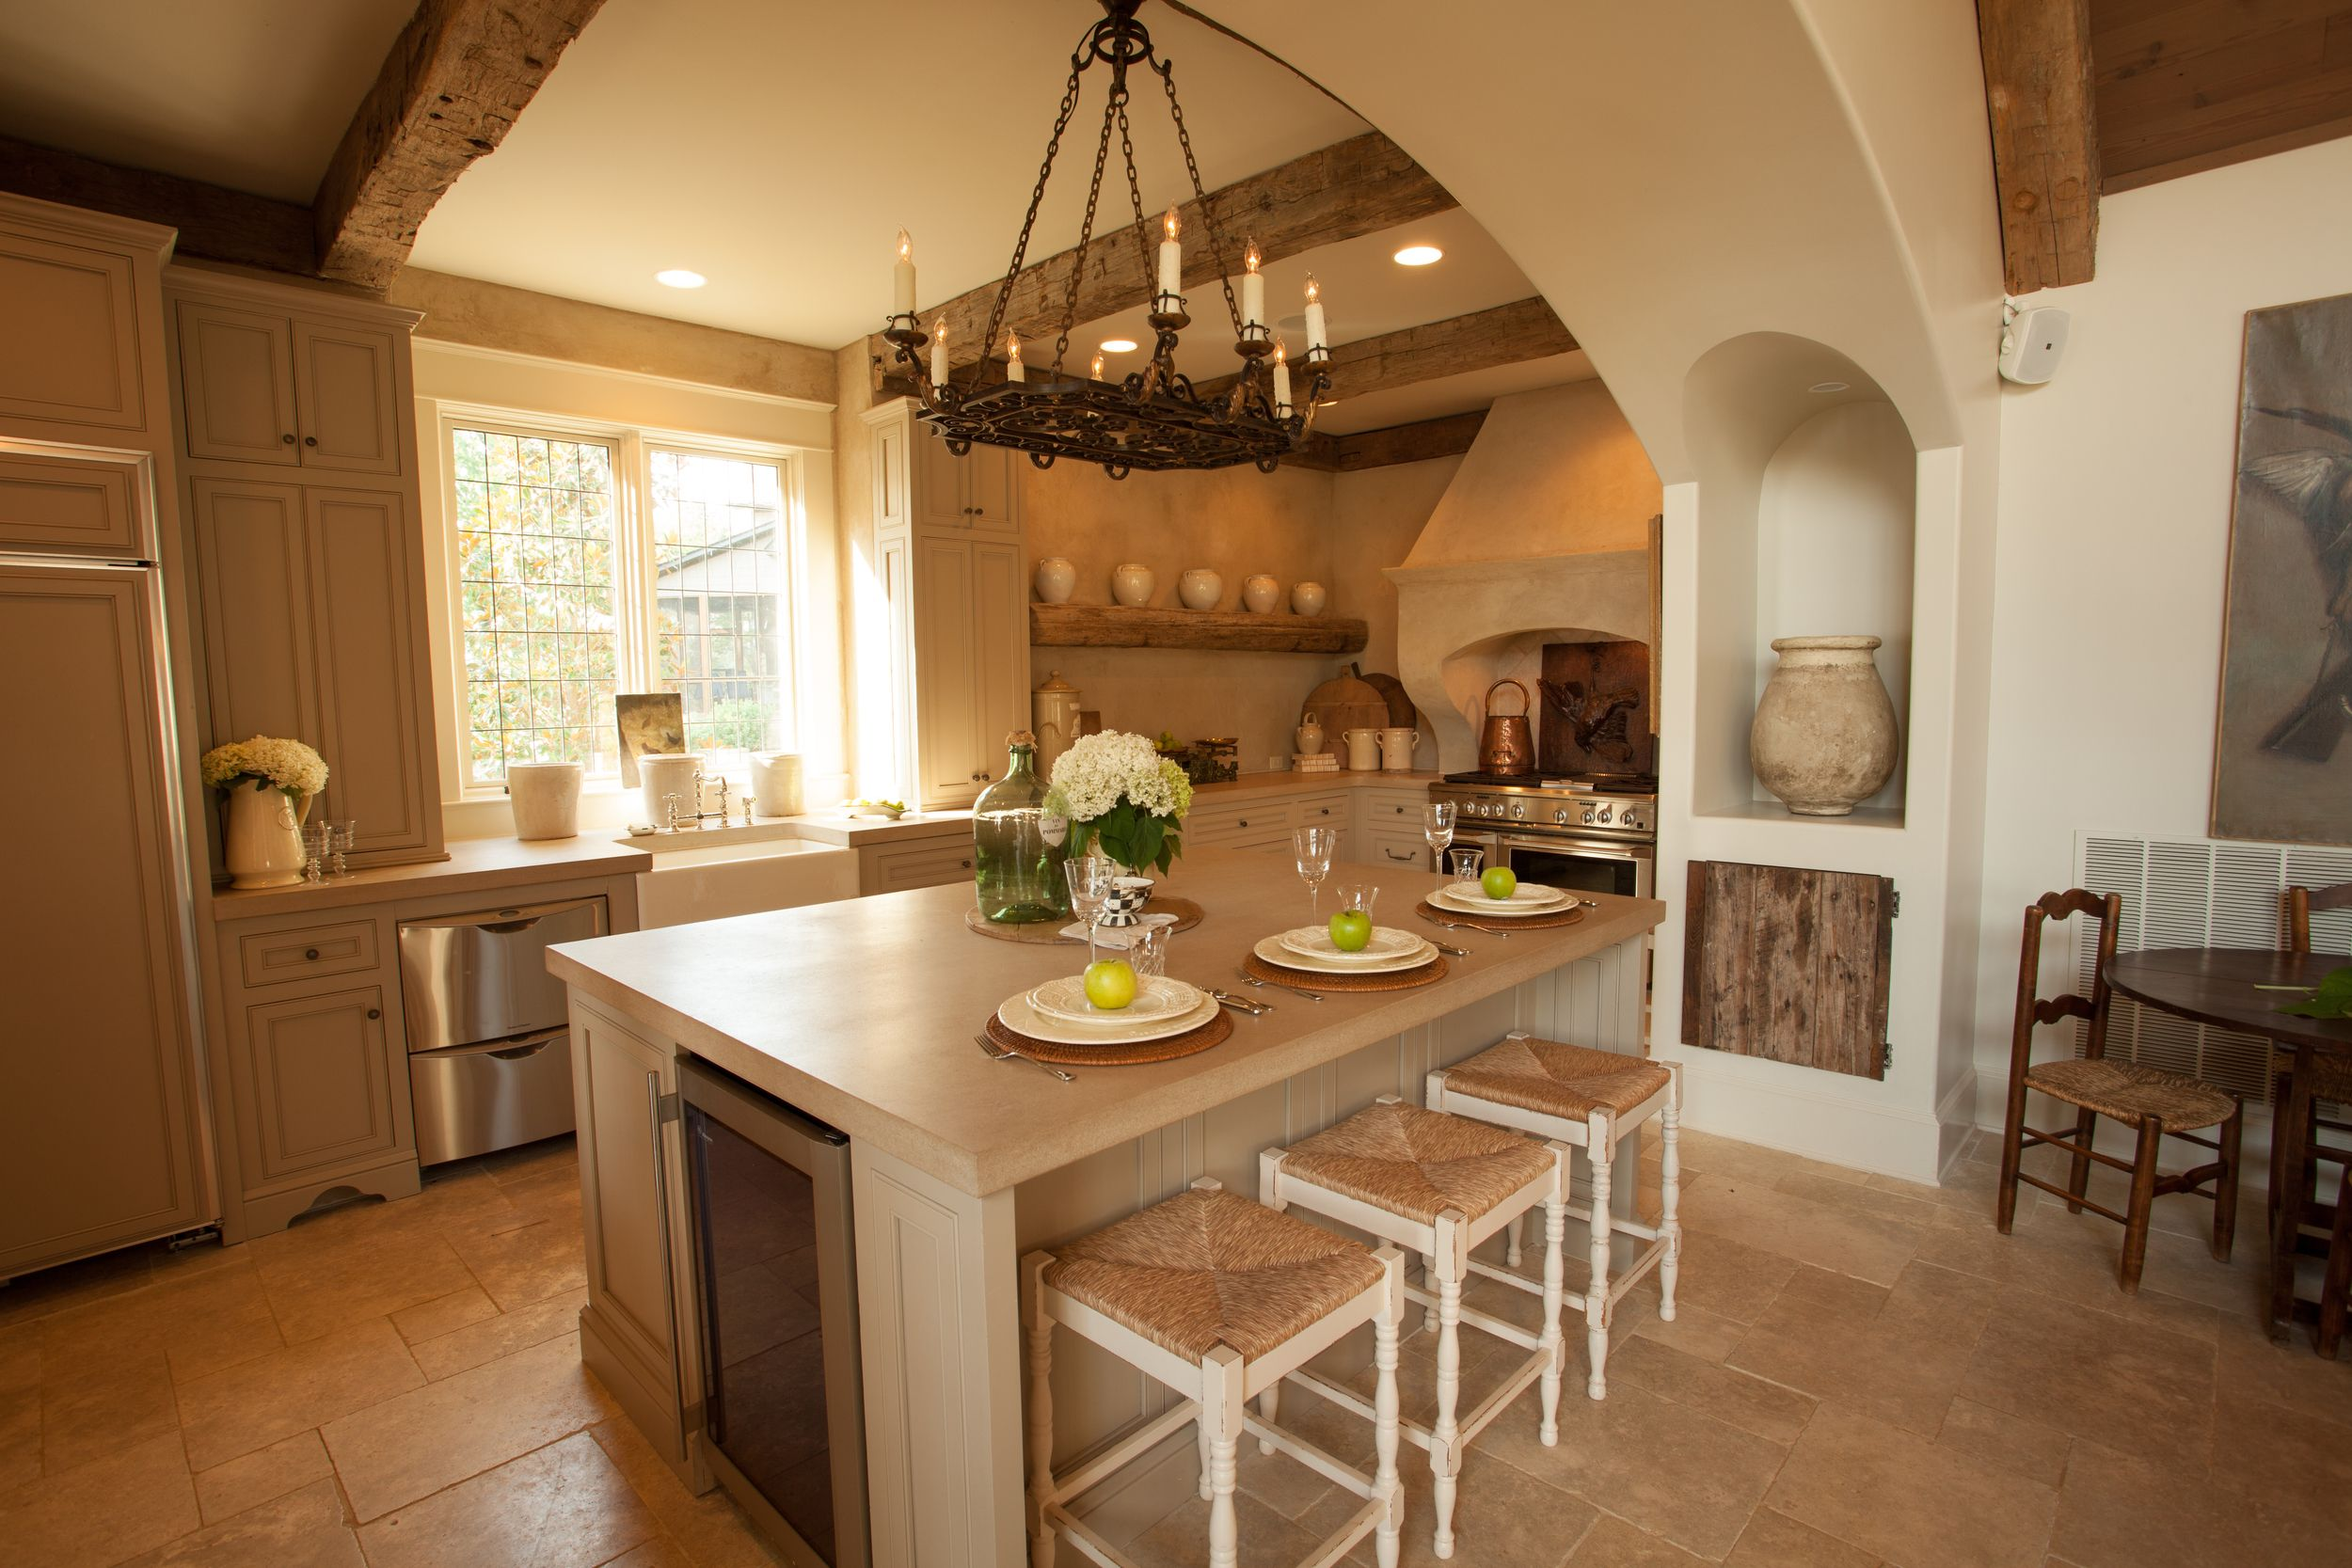 Attrayant Christopher Architecture And Interiors Is A Design Firm Based In Birmingham,  AL. Browse Our Award Winning Portfolio, Meet The Staff And Call Us With  Your ...